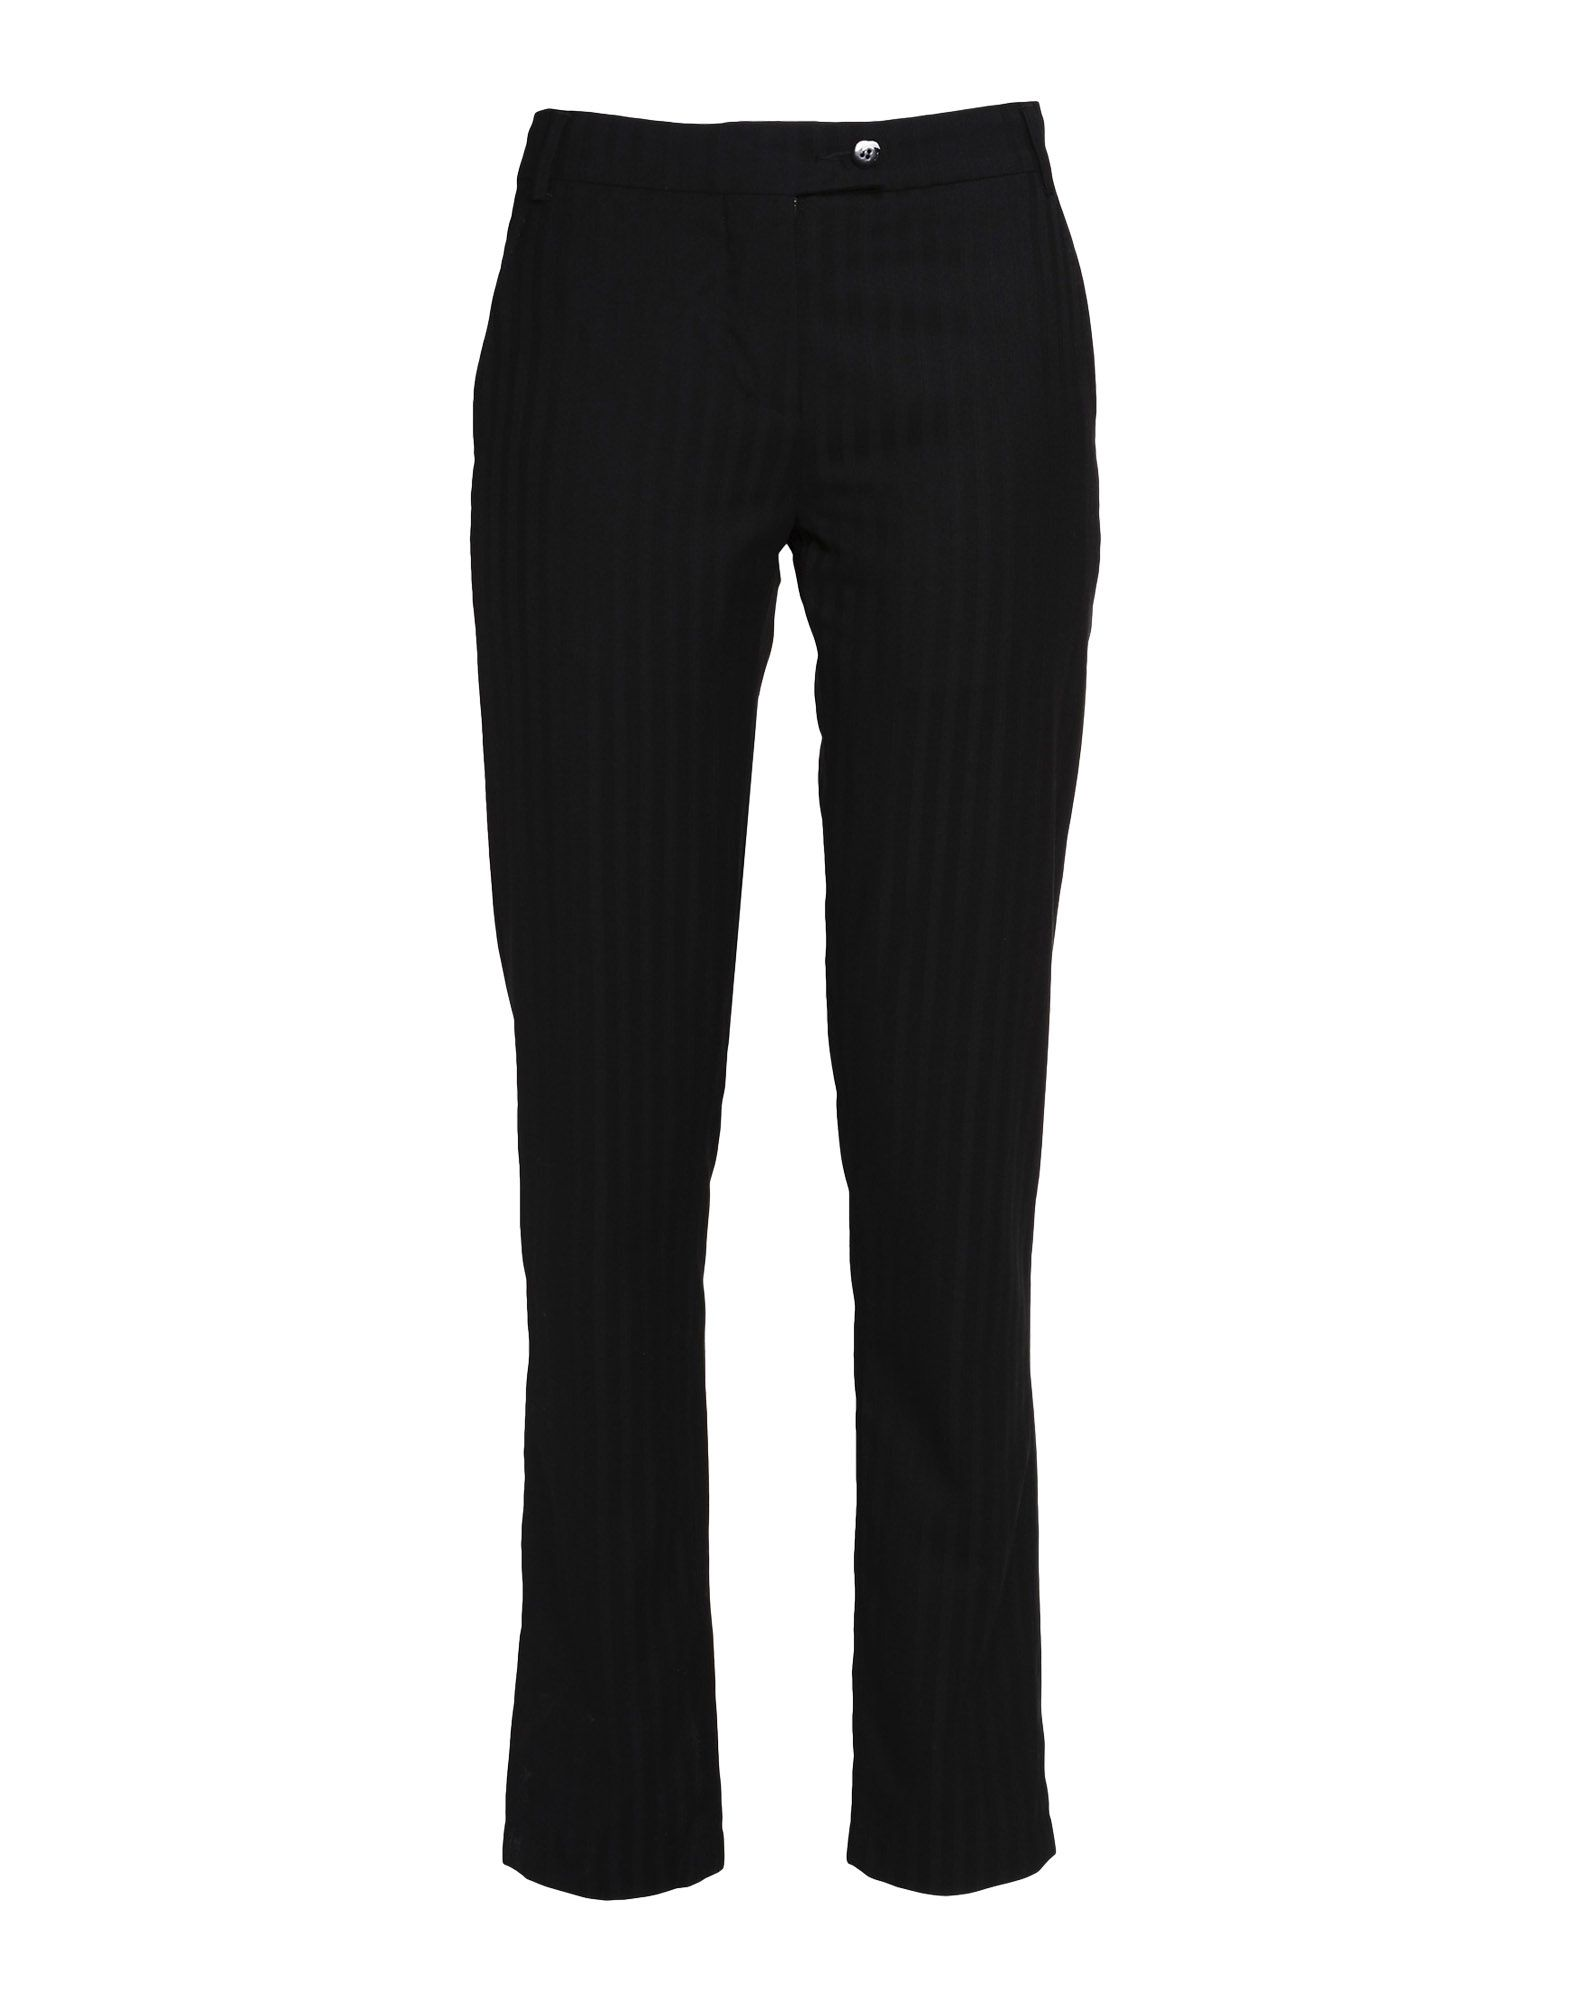 TITLE A Casual Pants in Black